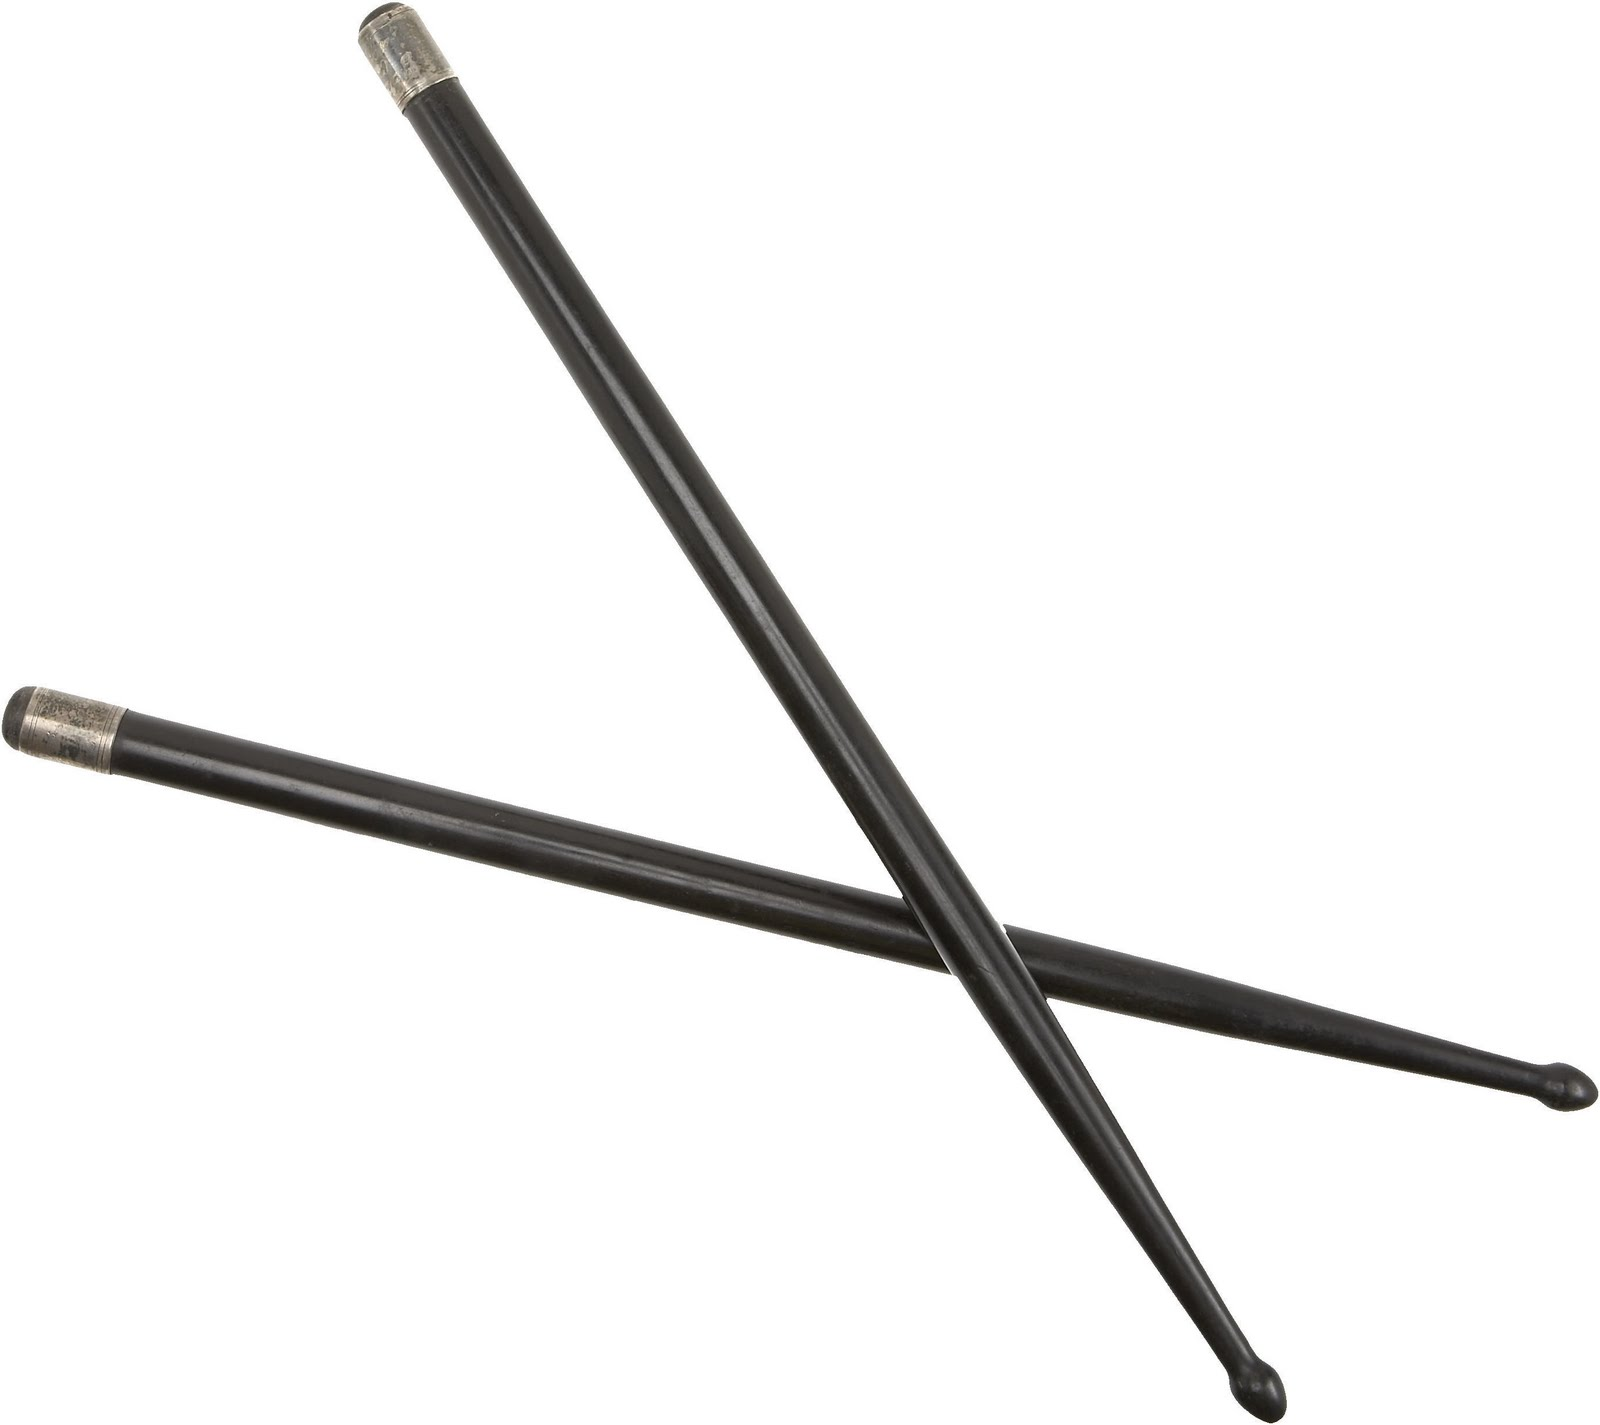 Musical clipart drumstick #12